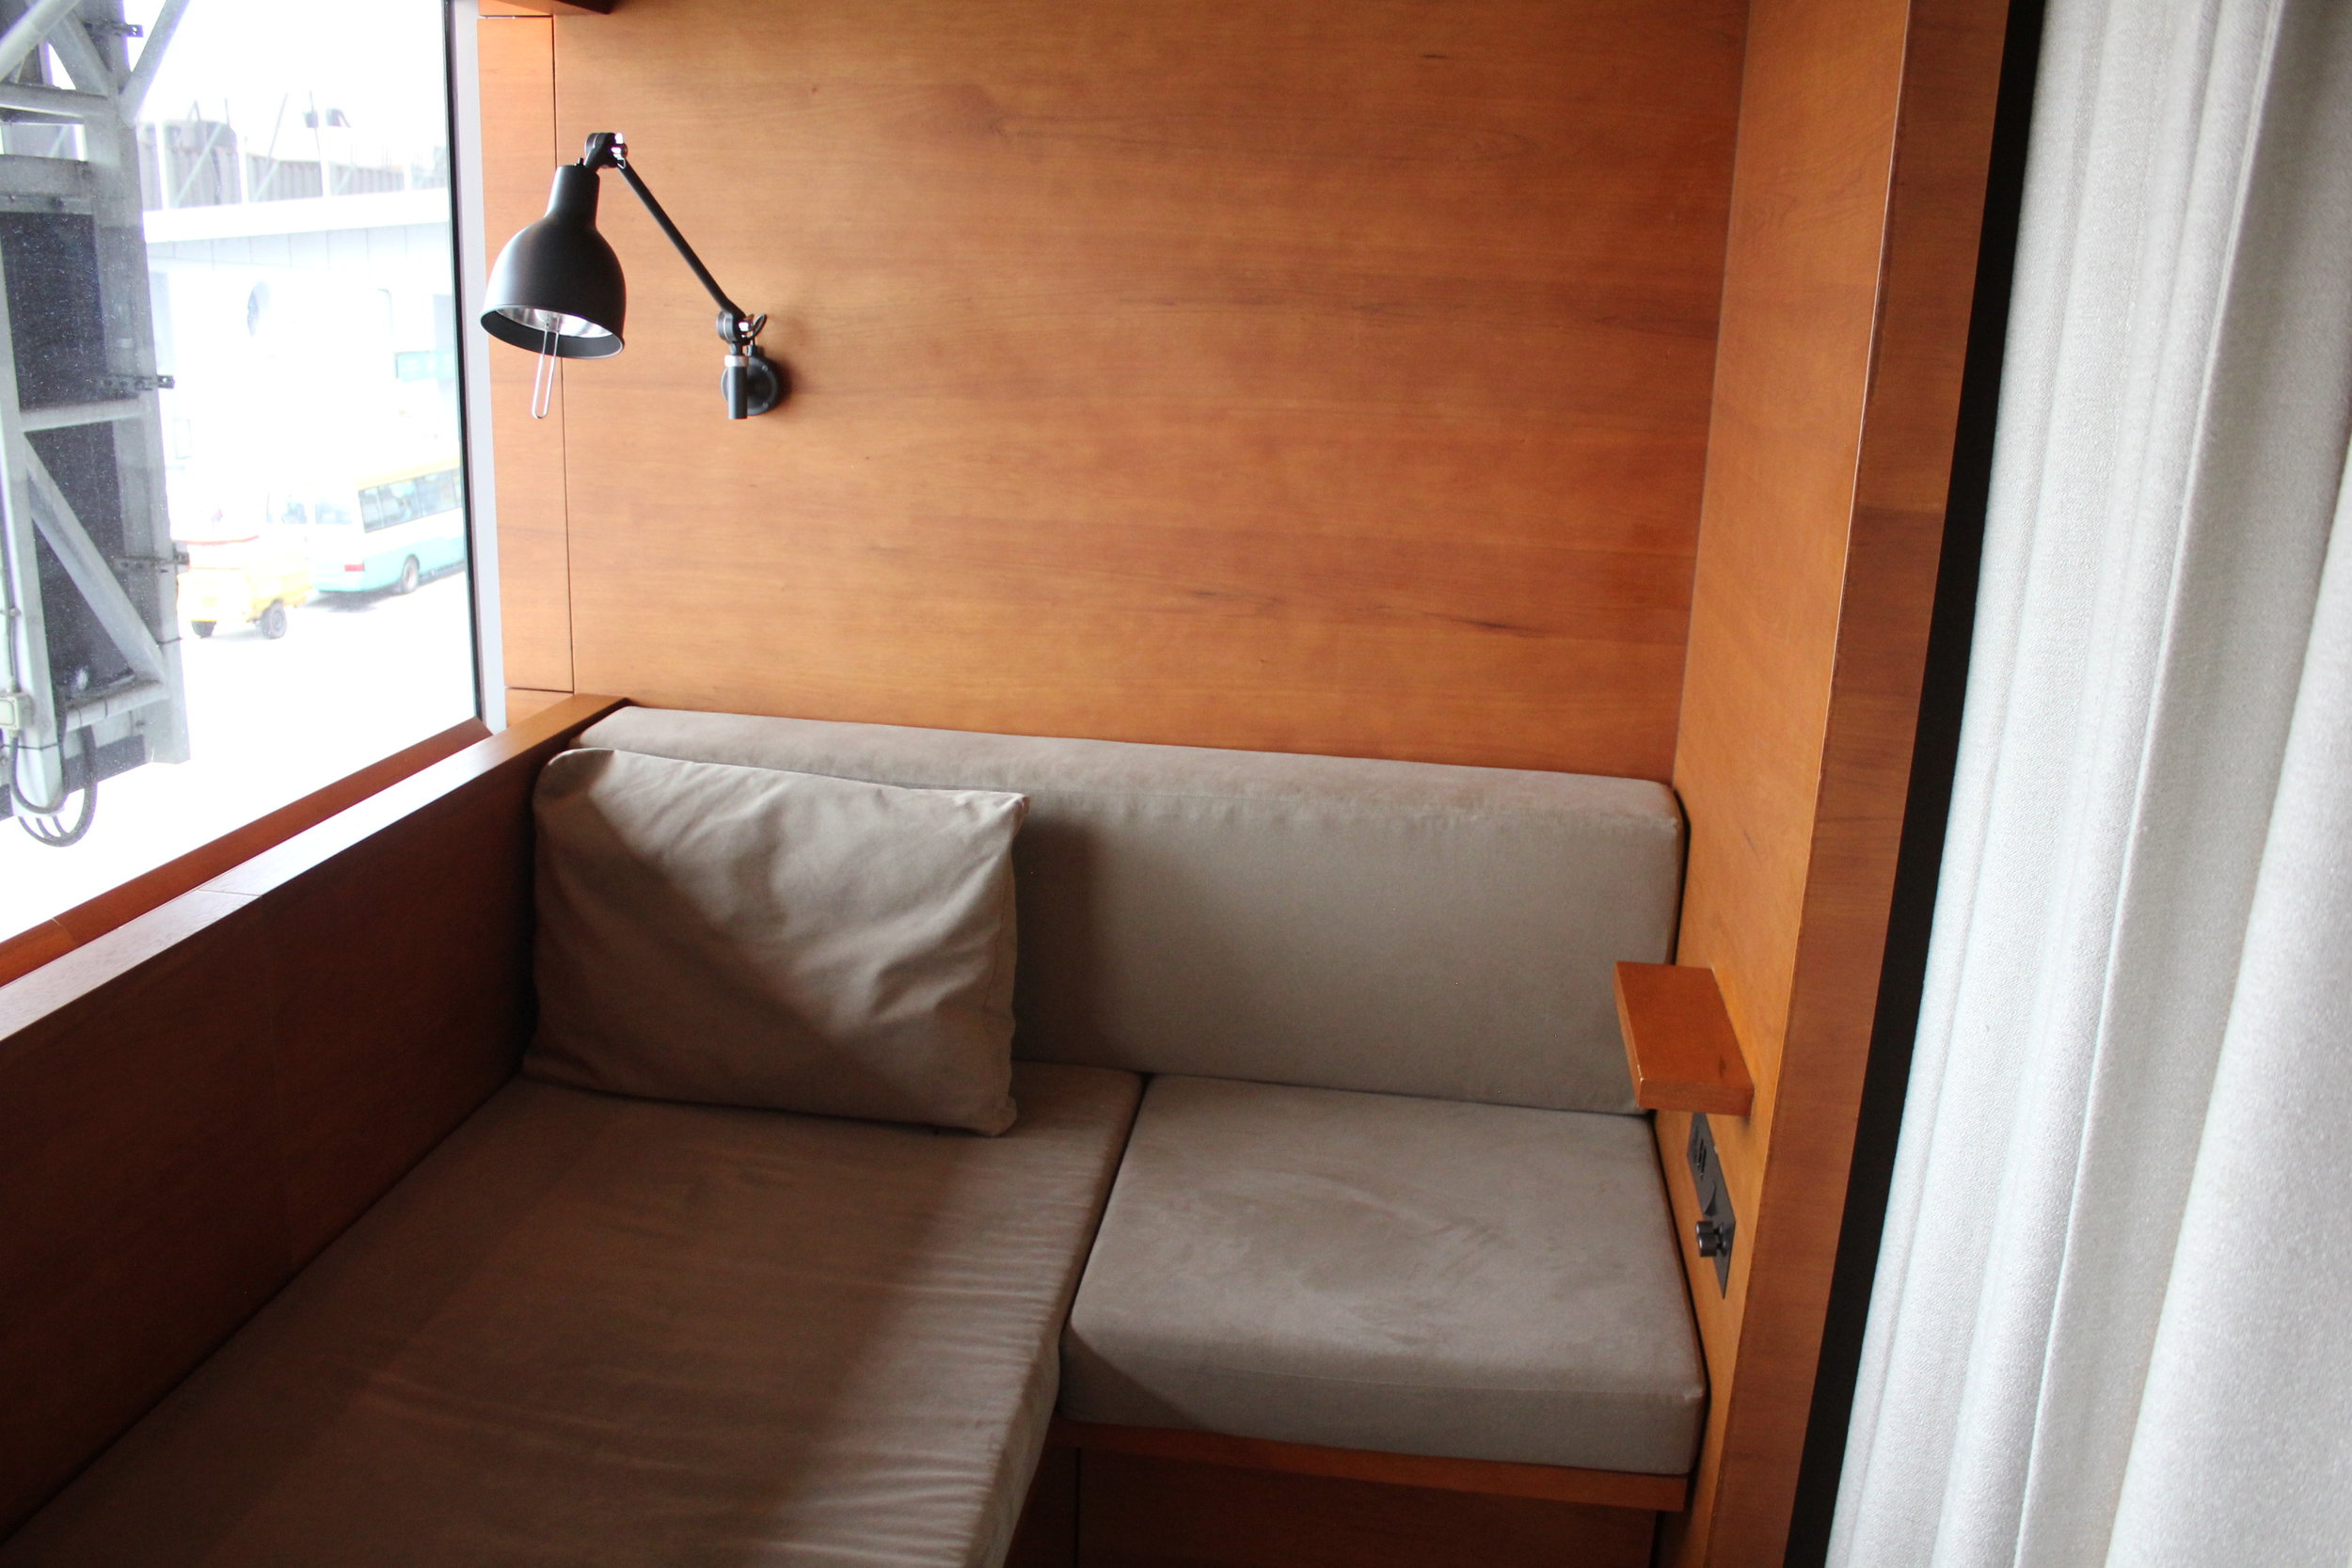 The Pier First Class Lounge by Cathay Pacific – Day suite interior